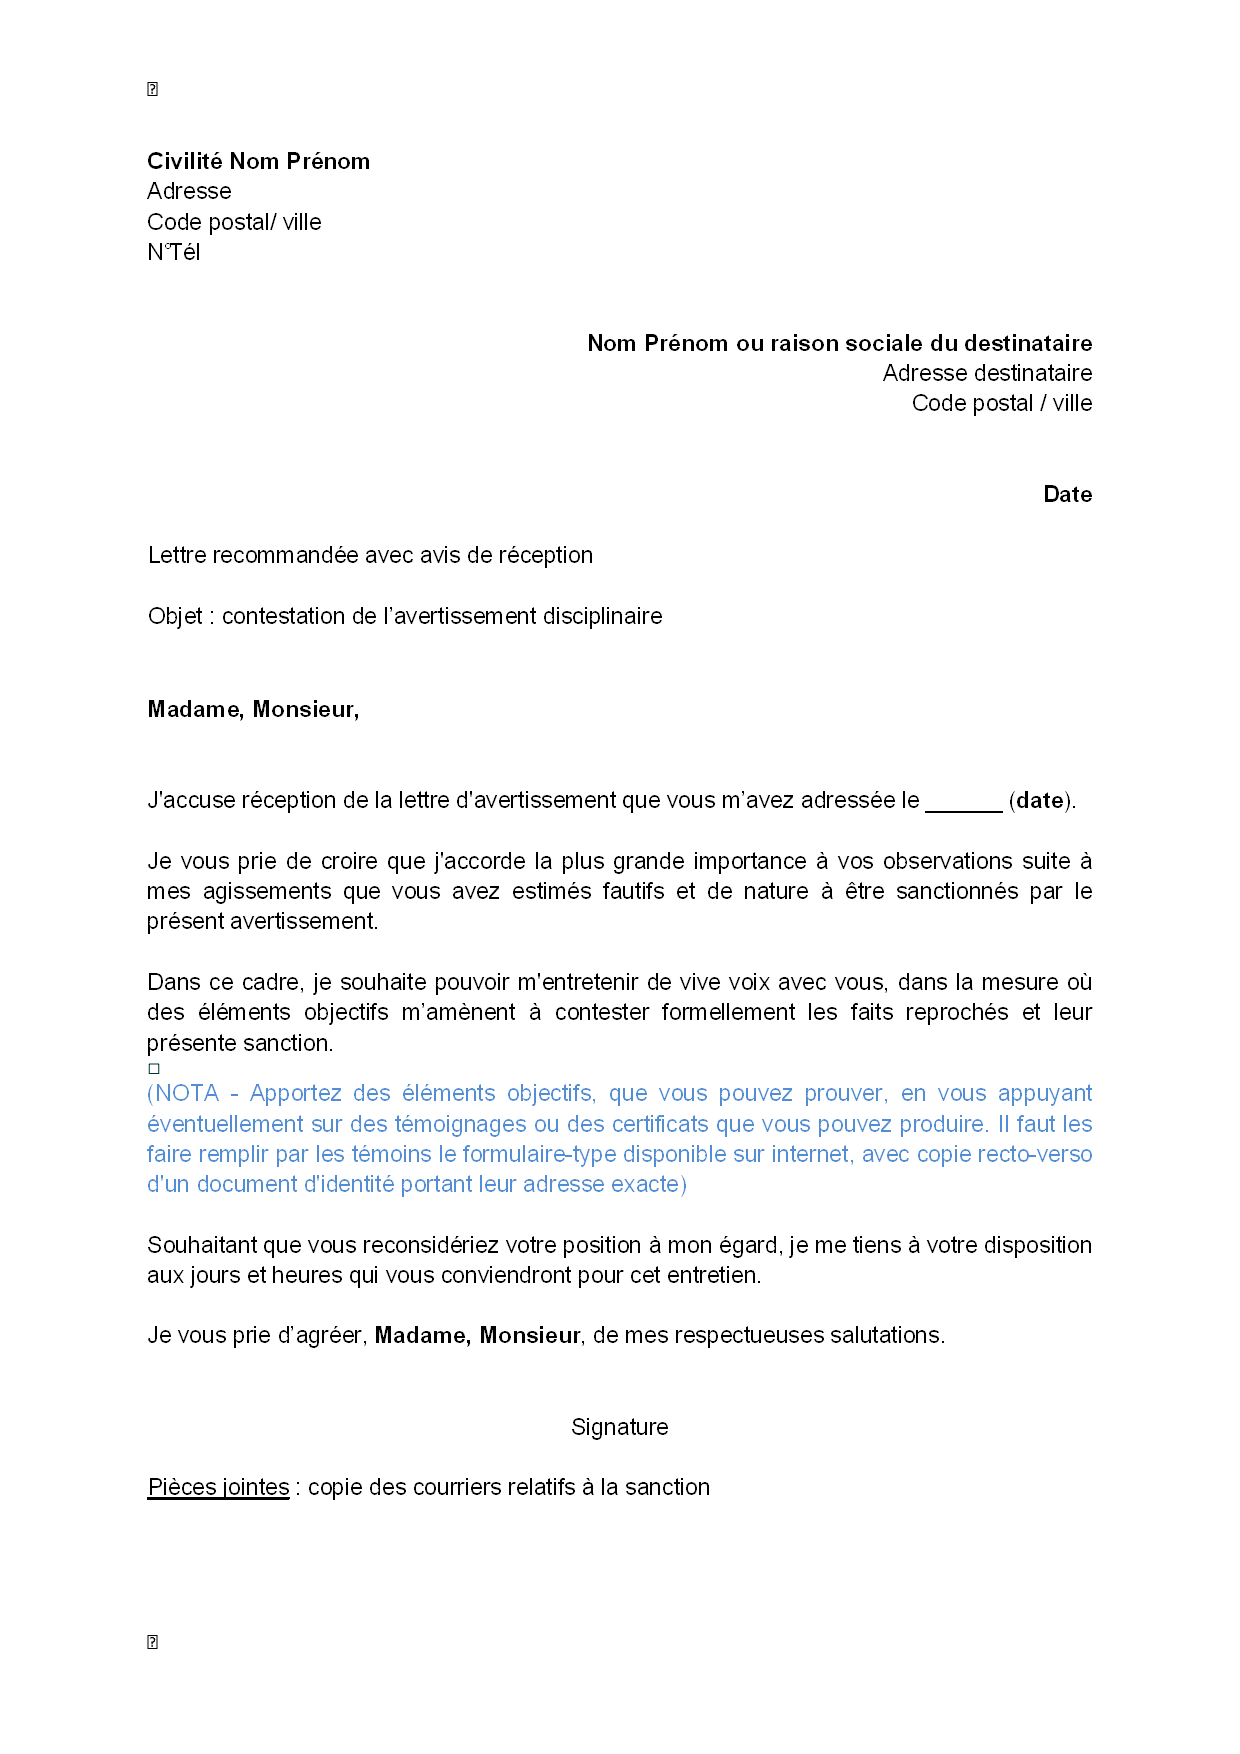 Exemple de courrier modele lettre reclamation | Bedots